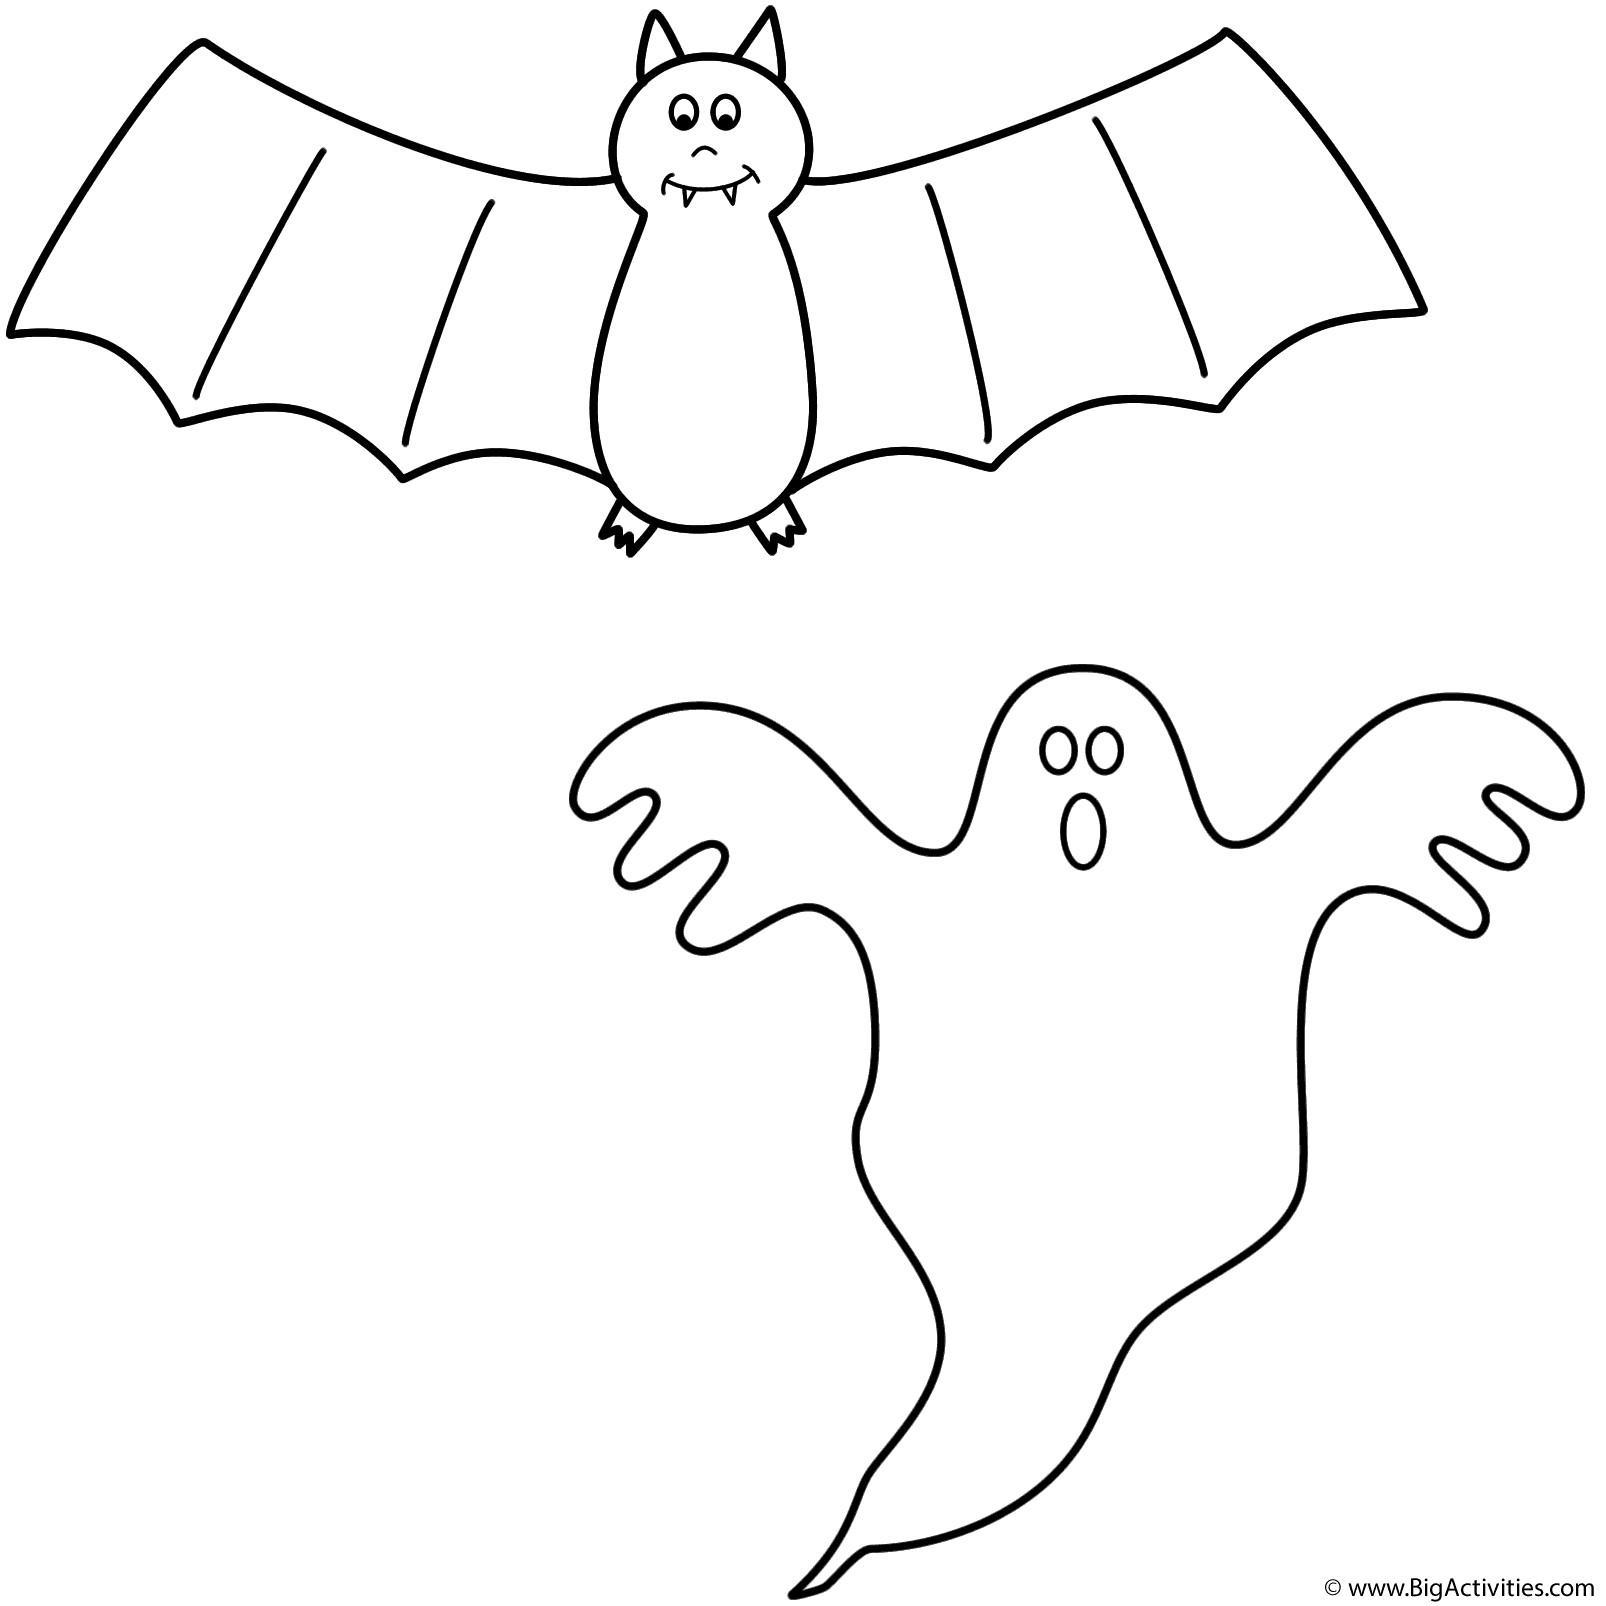 1606x1606 Coloring Pages Draw A Bat Download